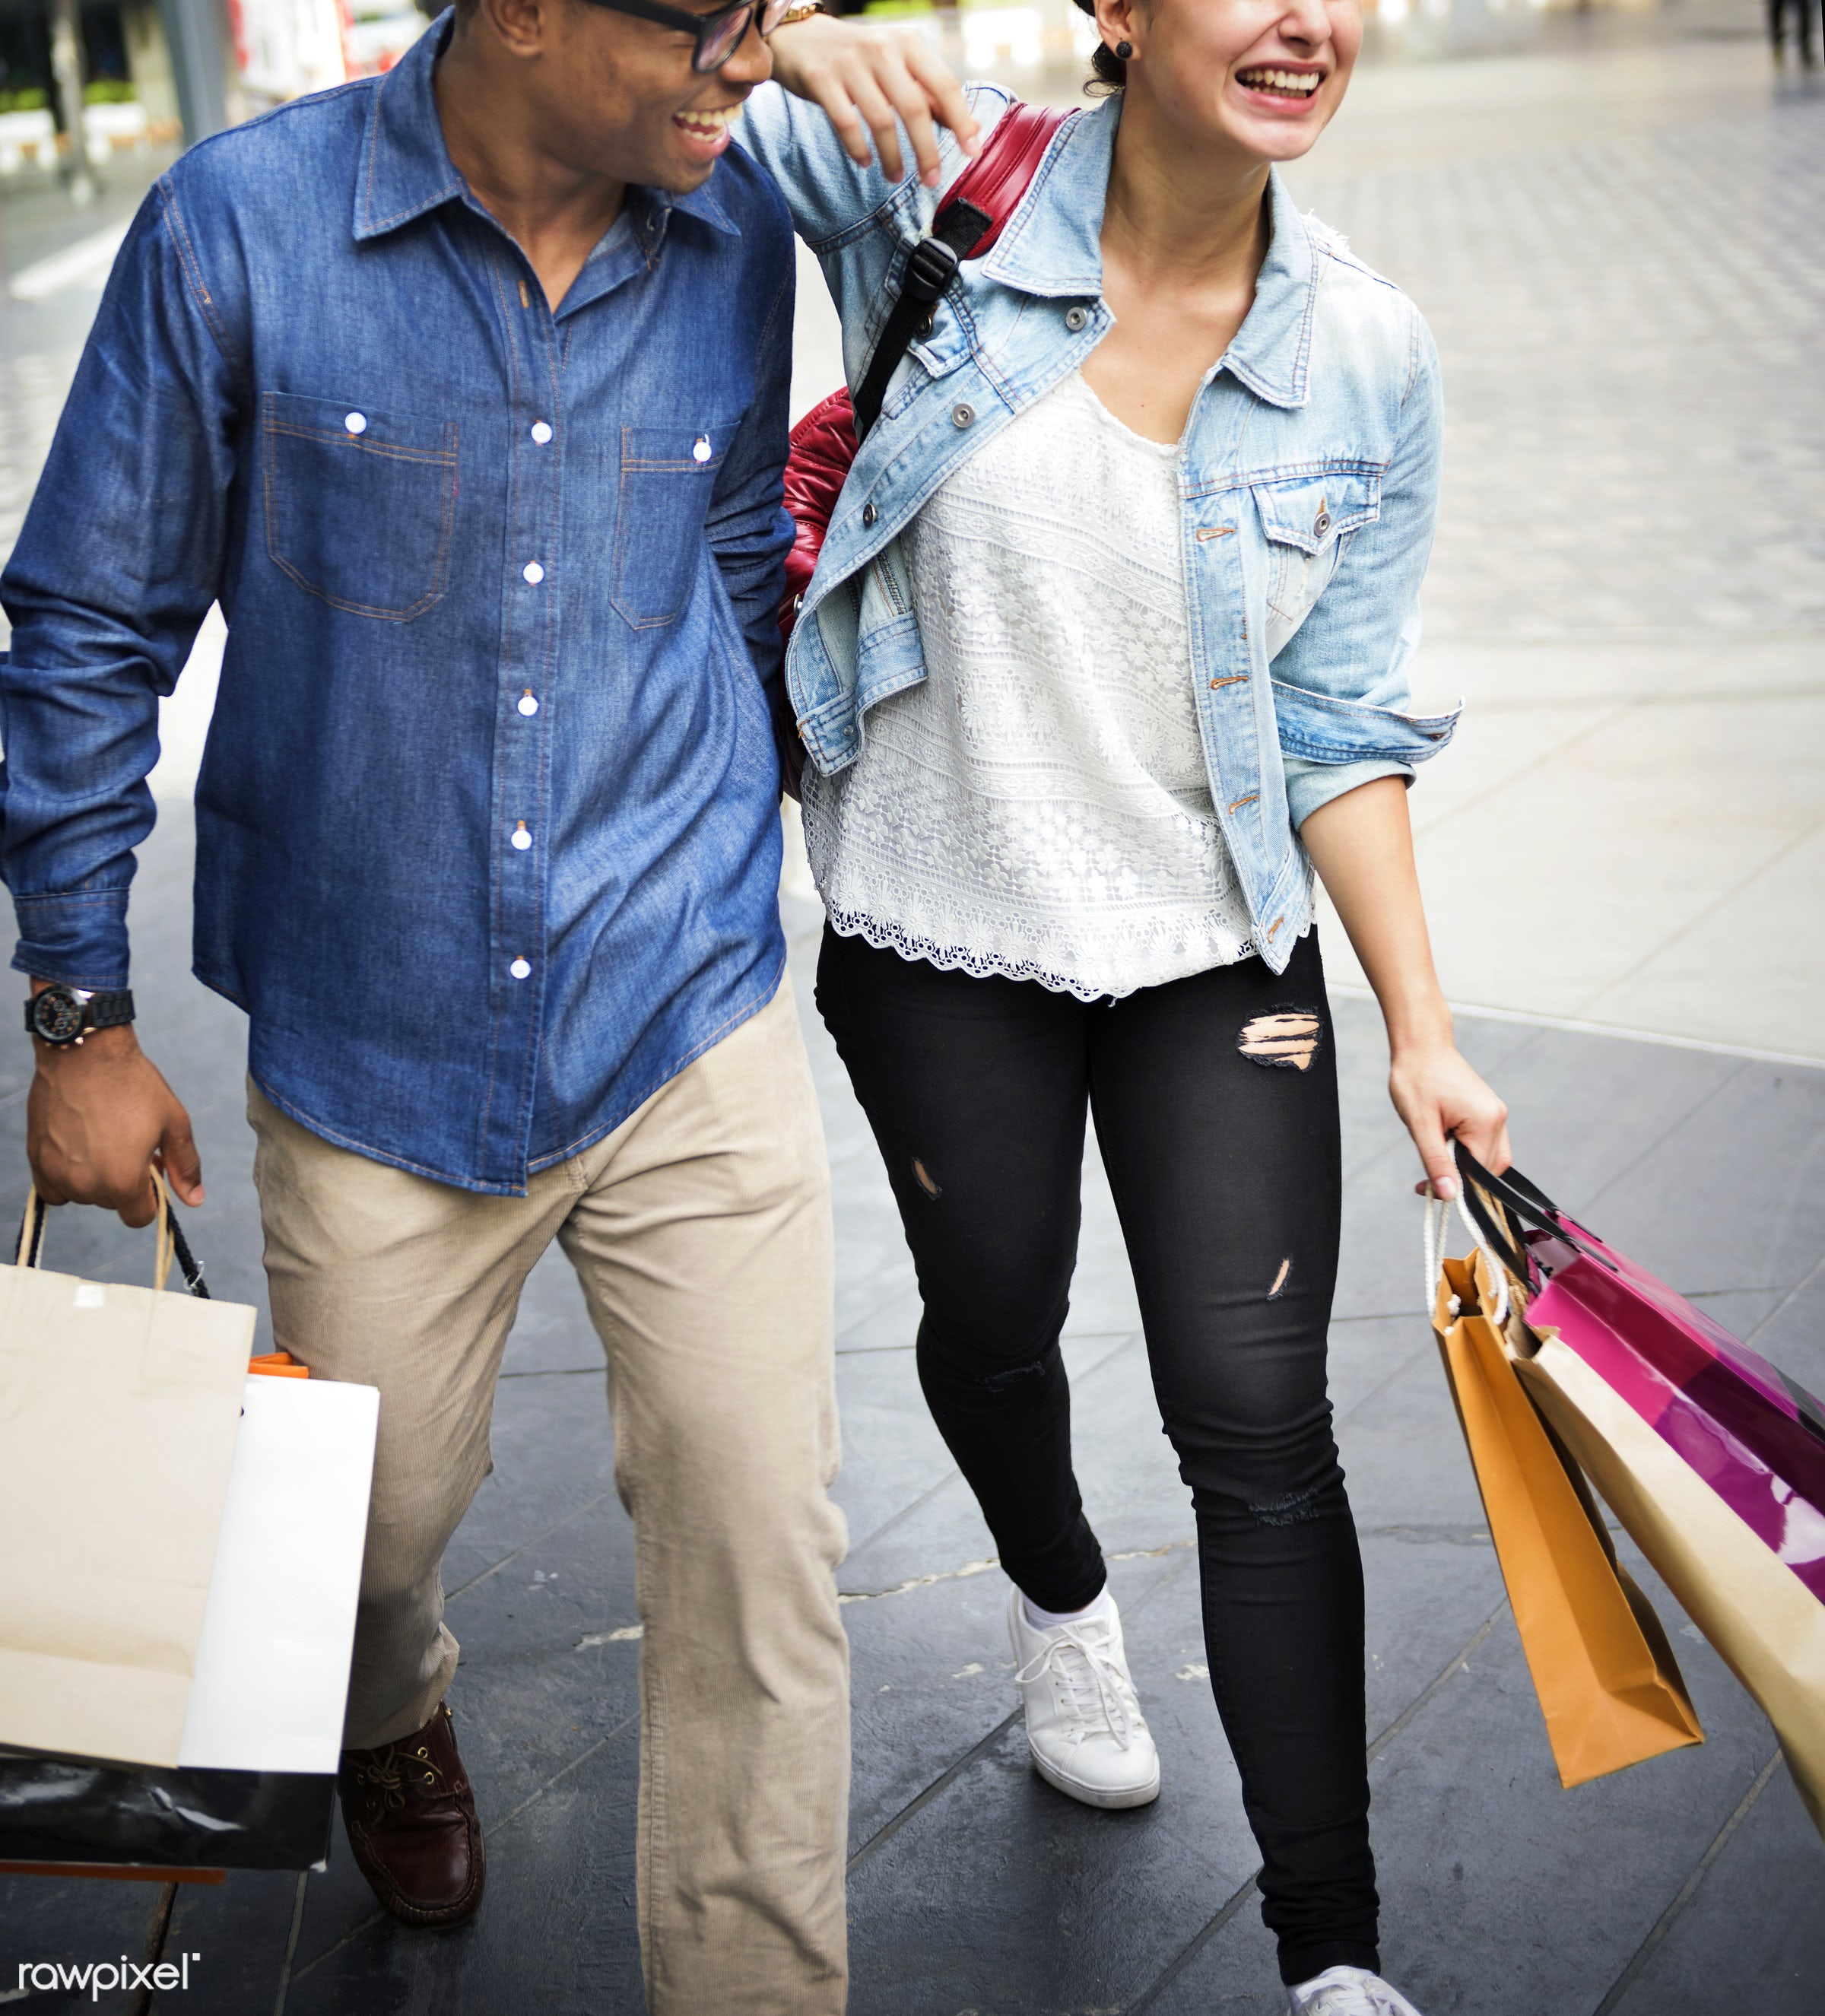 Friends shopping together - shopping, spend, walking, african descent, boyfriend, buyer, buying, casual, cheerful, commerce...